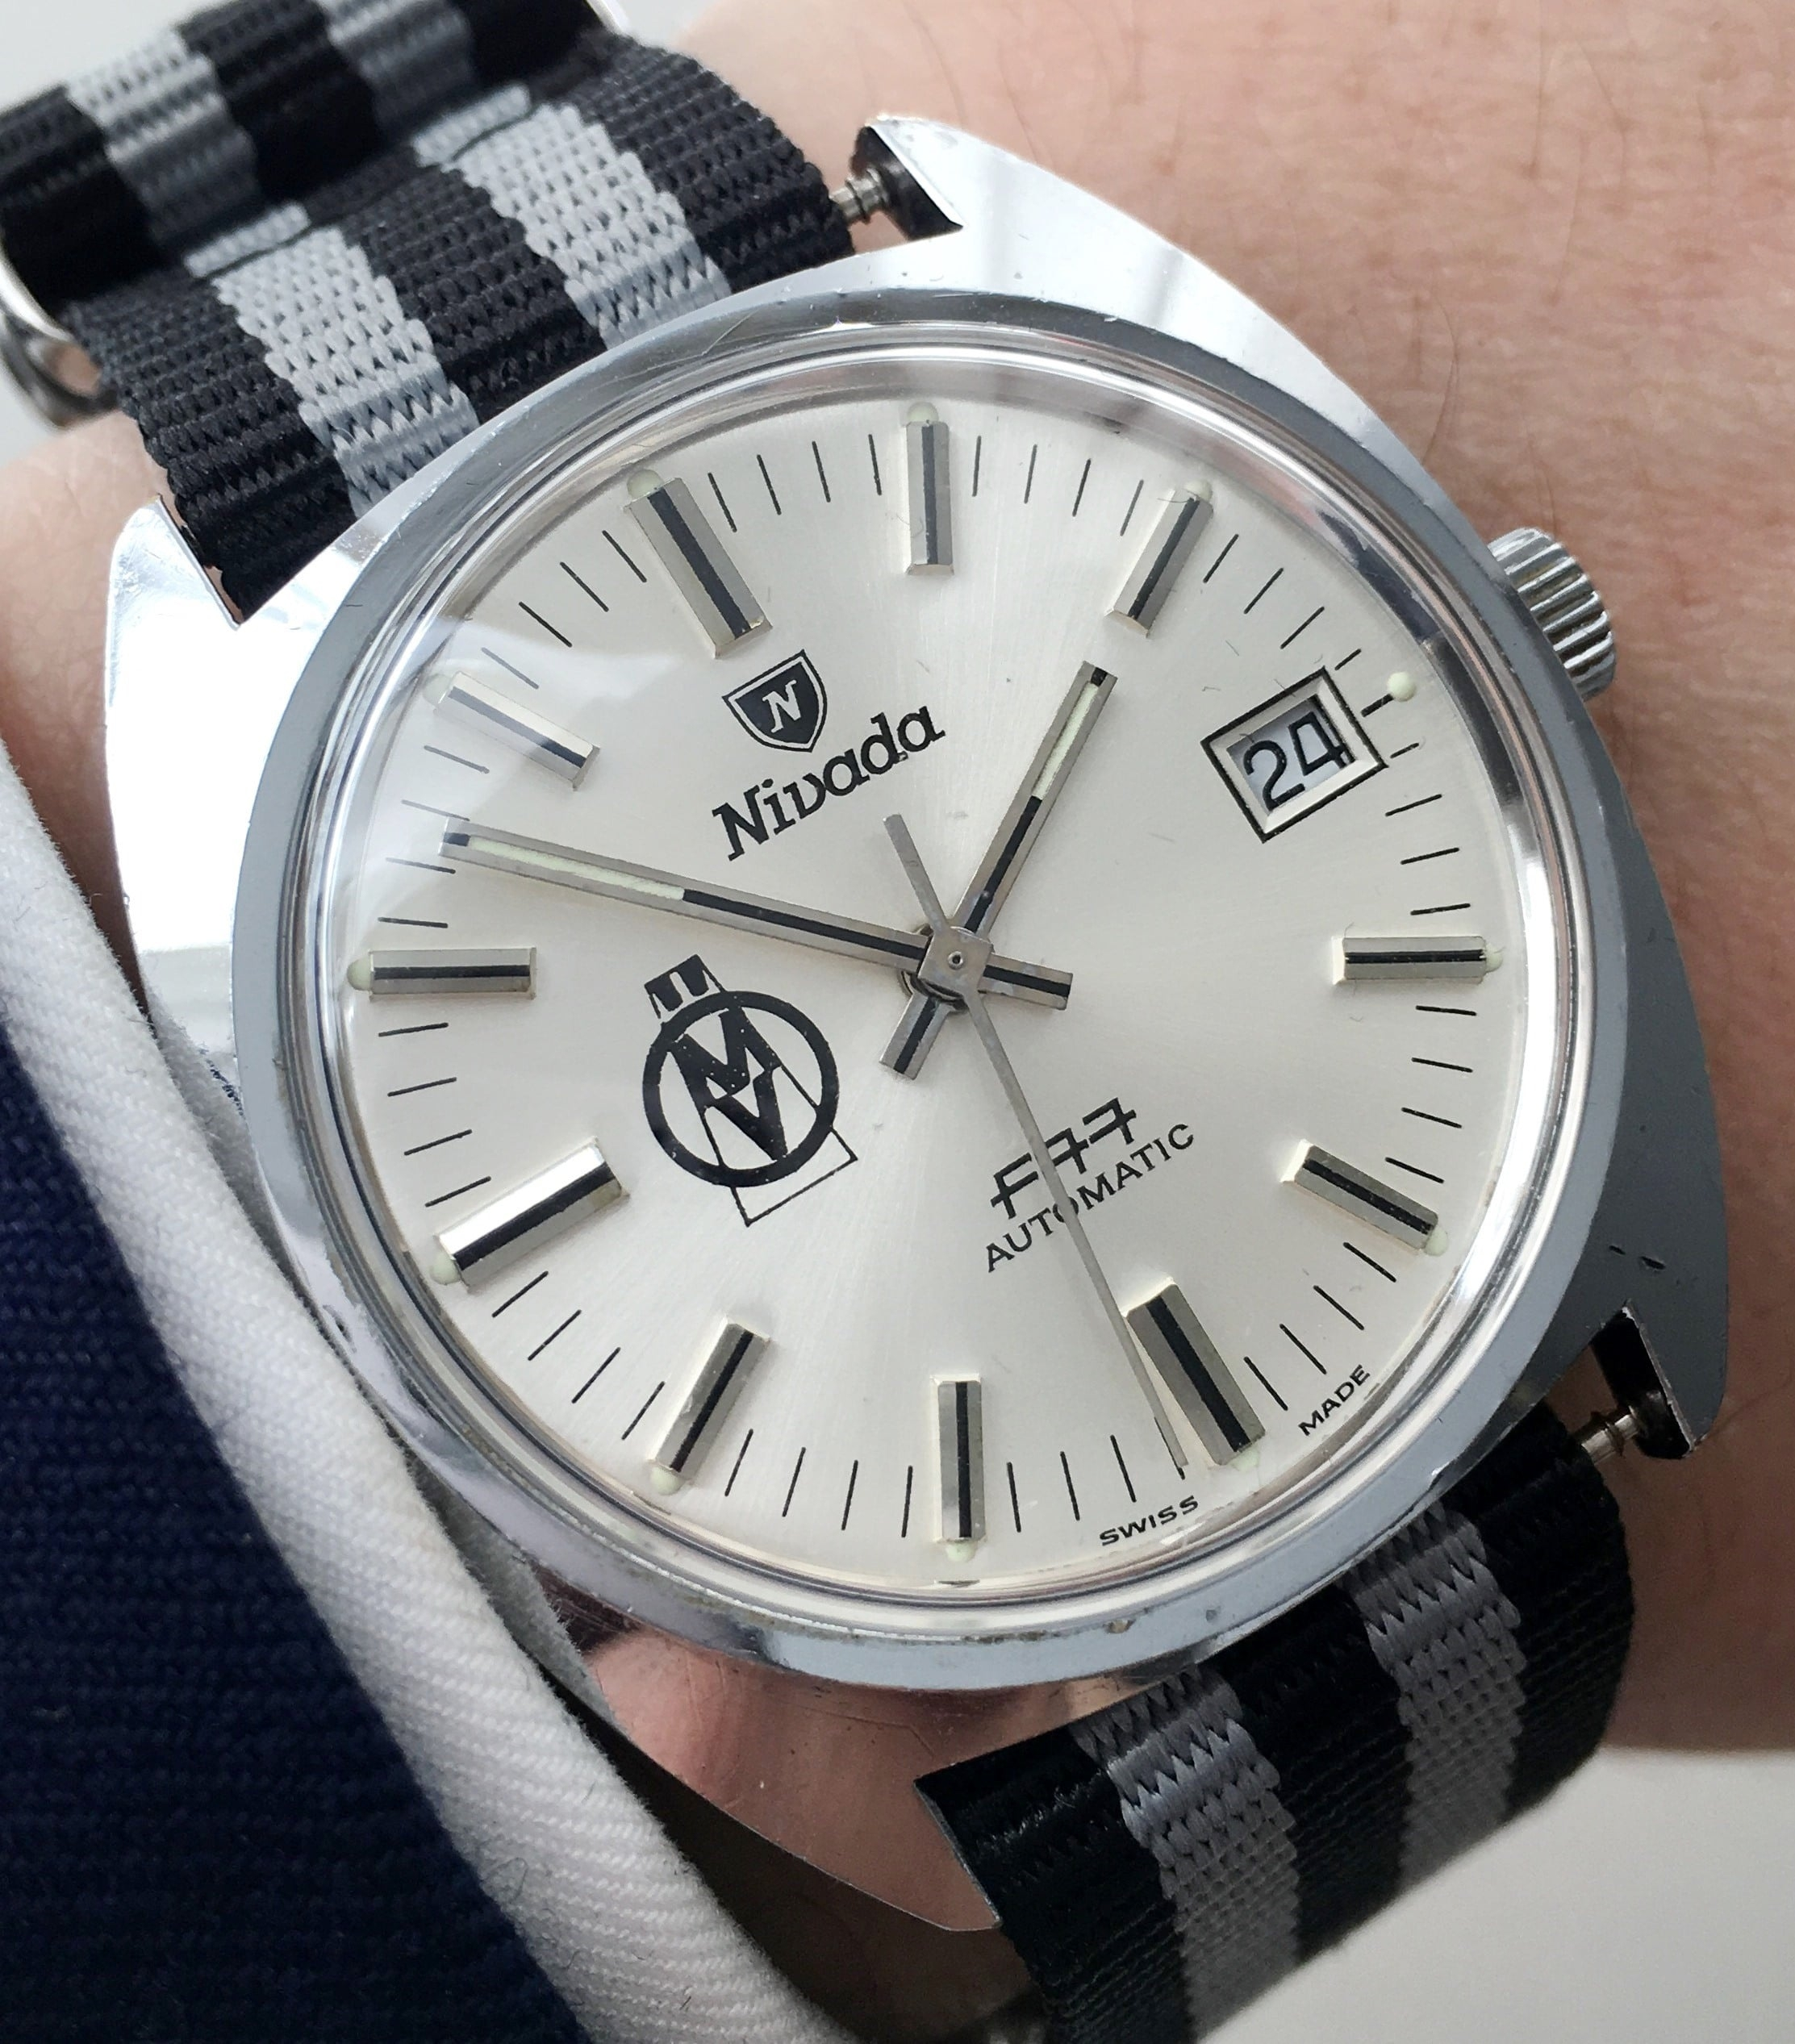 Uhr Vintage Nivada Automatic Watch Bargain